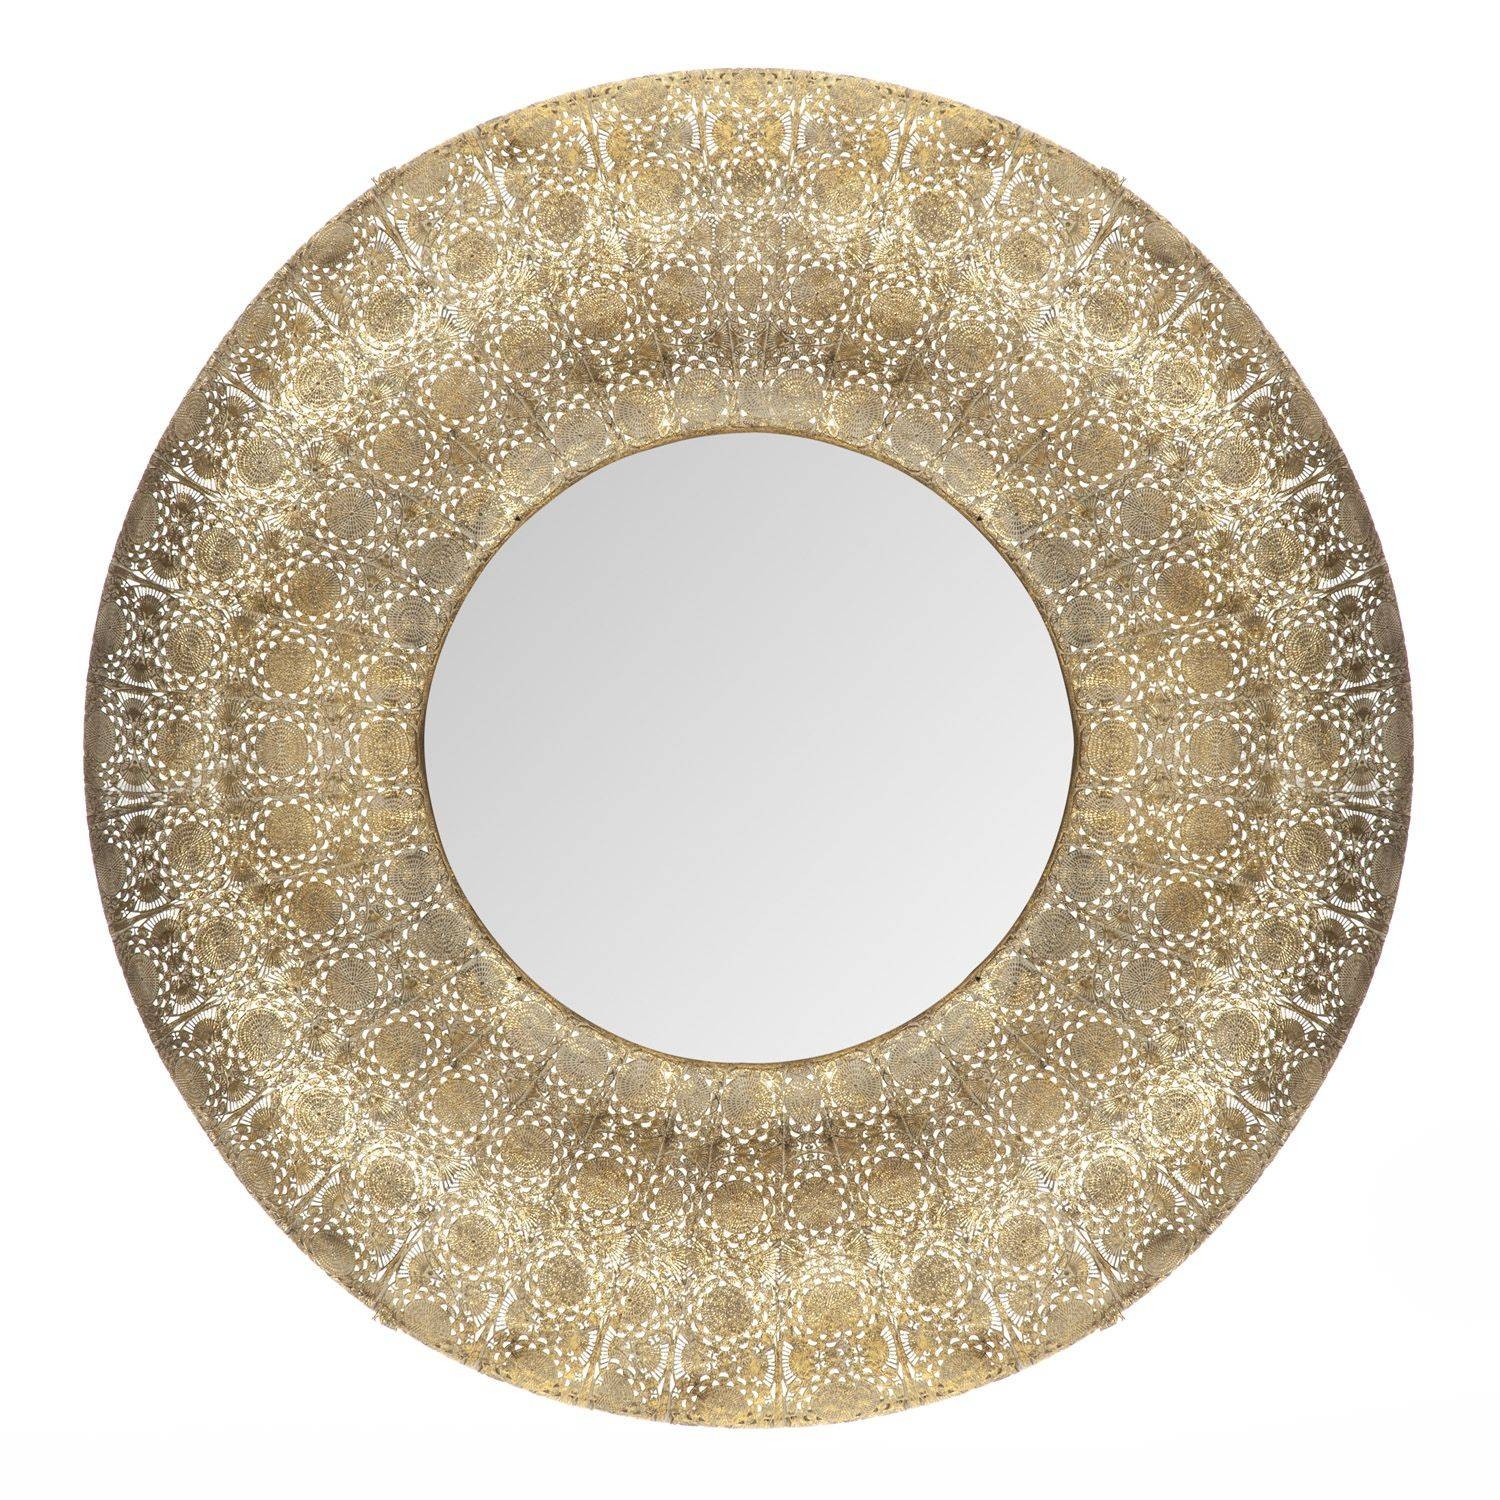 Large Round Gold Moroccan Arabian Arabesque Rare • Samisonline pertaining to Gold Round Mirrors (Image 14 of 25)